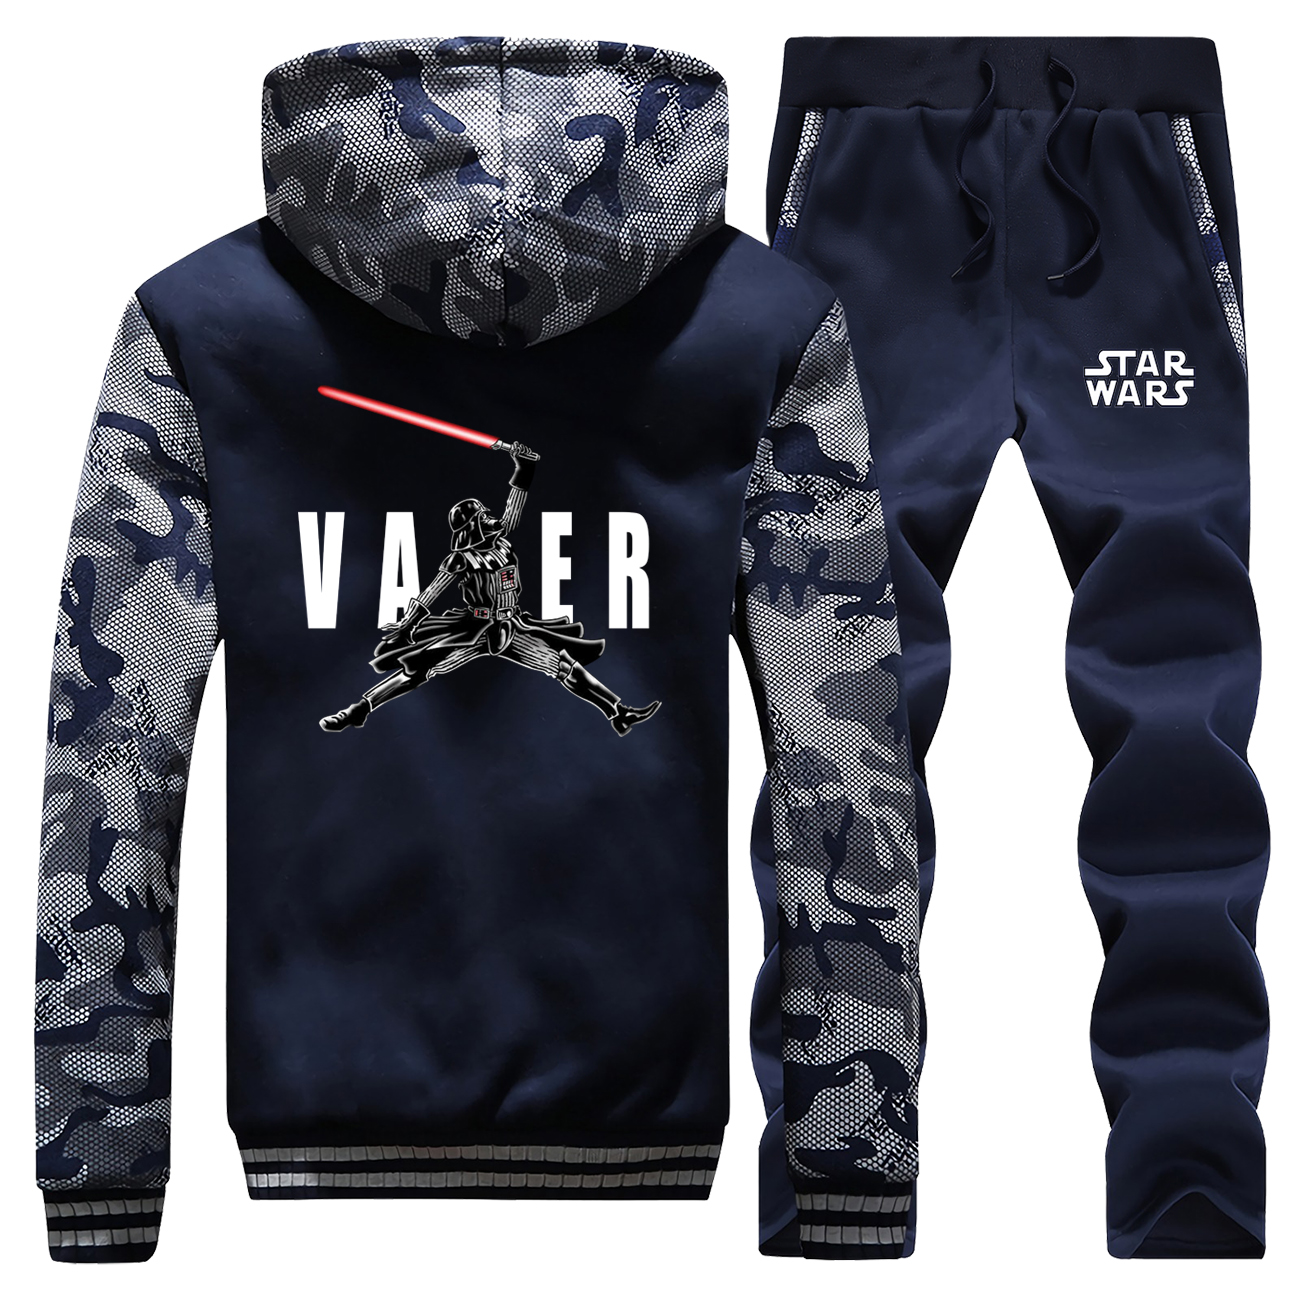 Hoodies Darth Vader Star Wars Pant Set Men Selfie Stormtrooper Tracksuit Coat Track Suit Winter Thick Fleece Jacket 2 Piece Sets